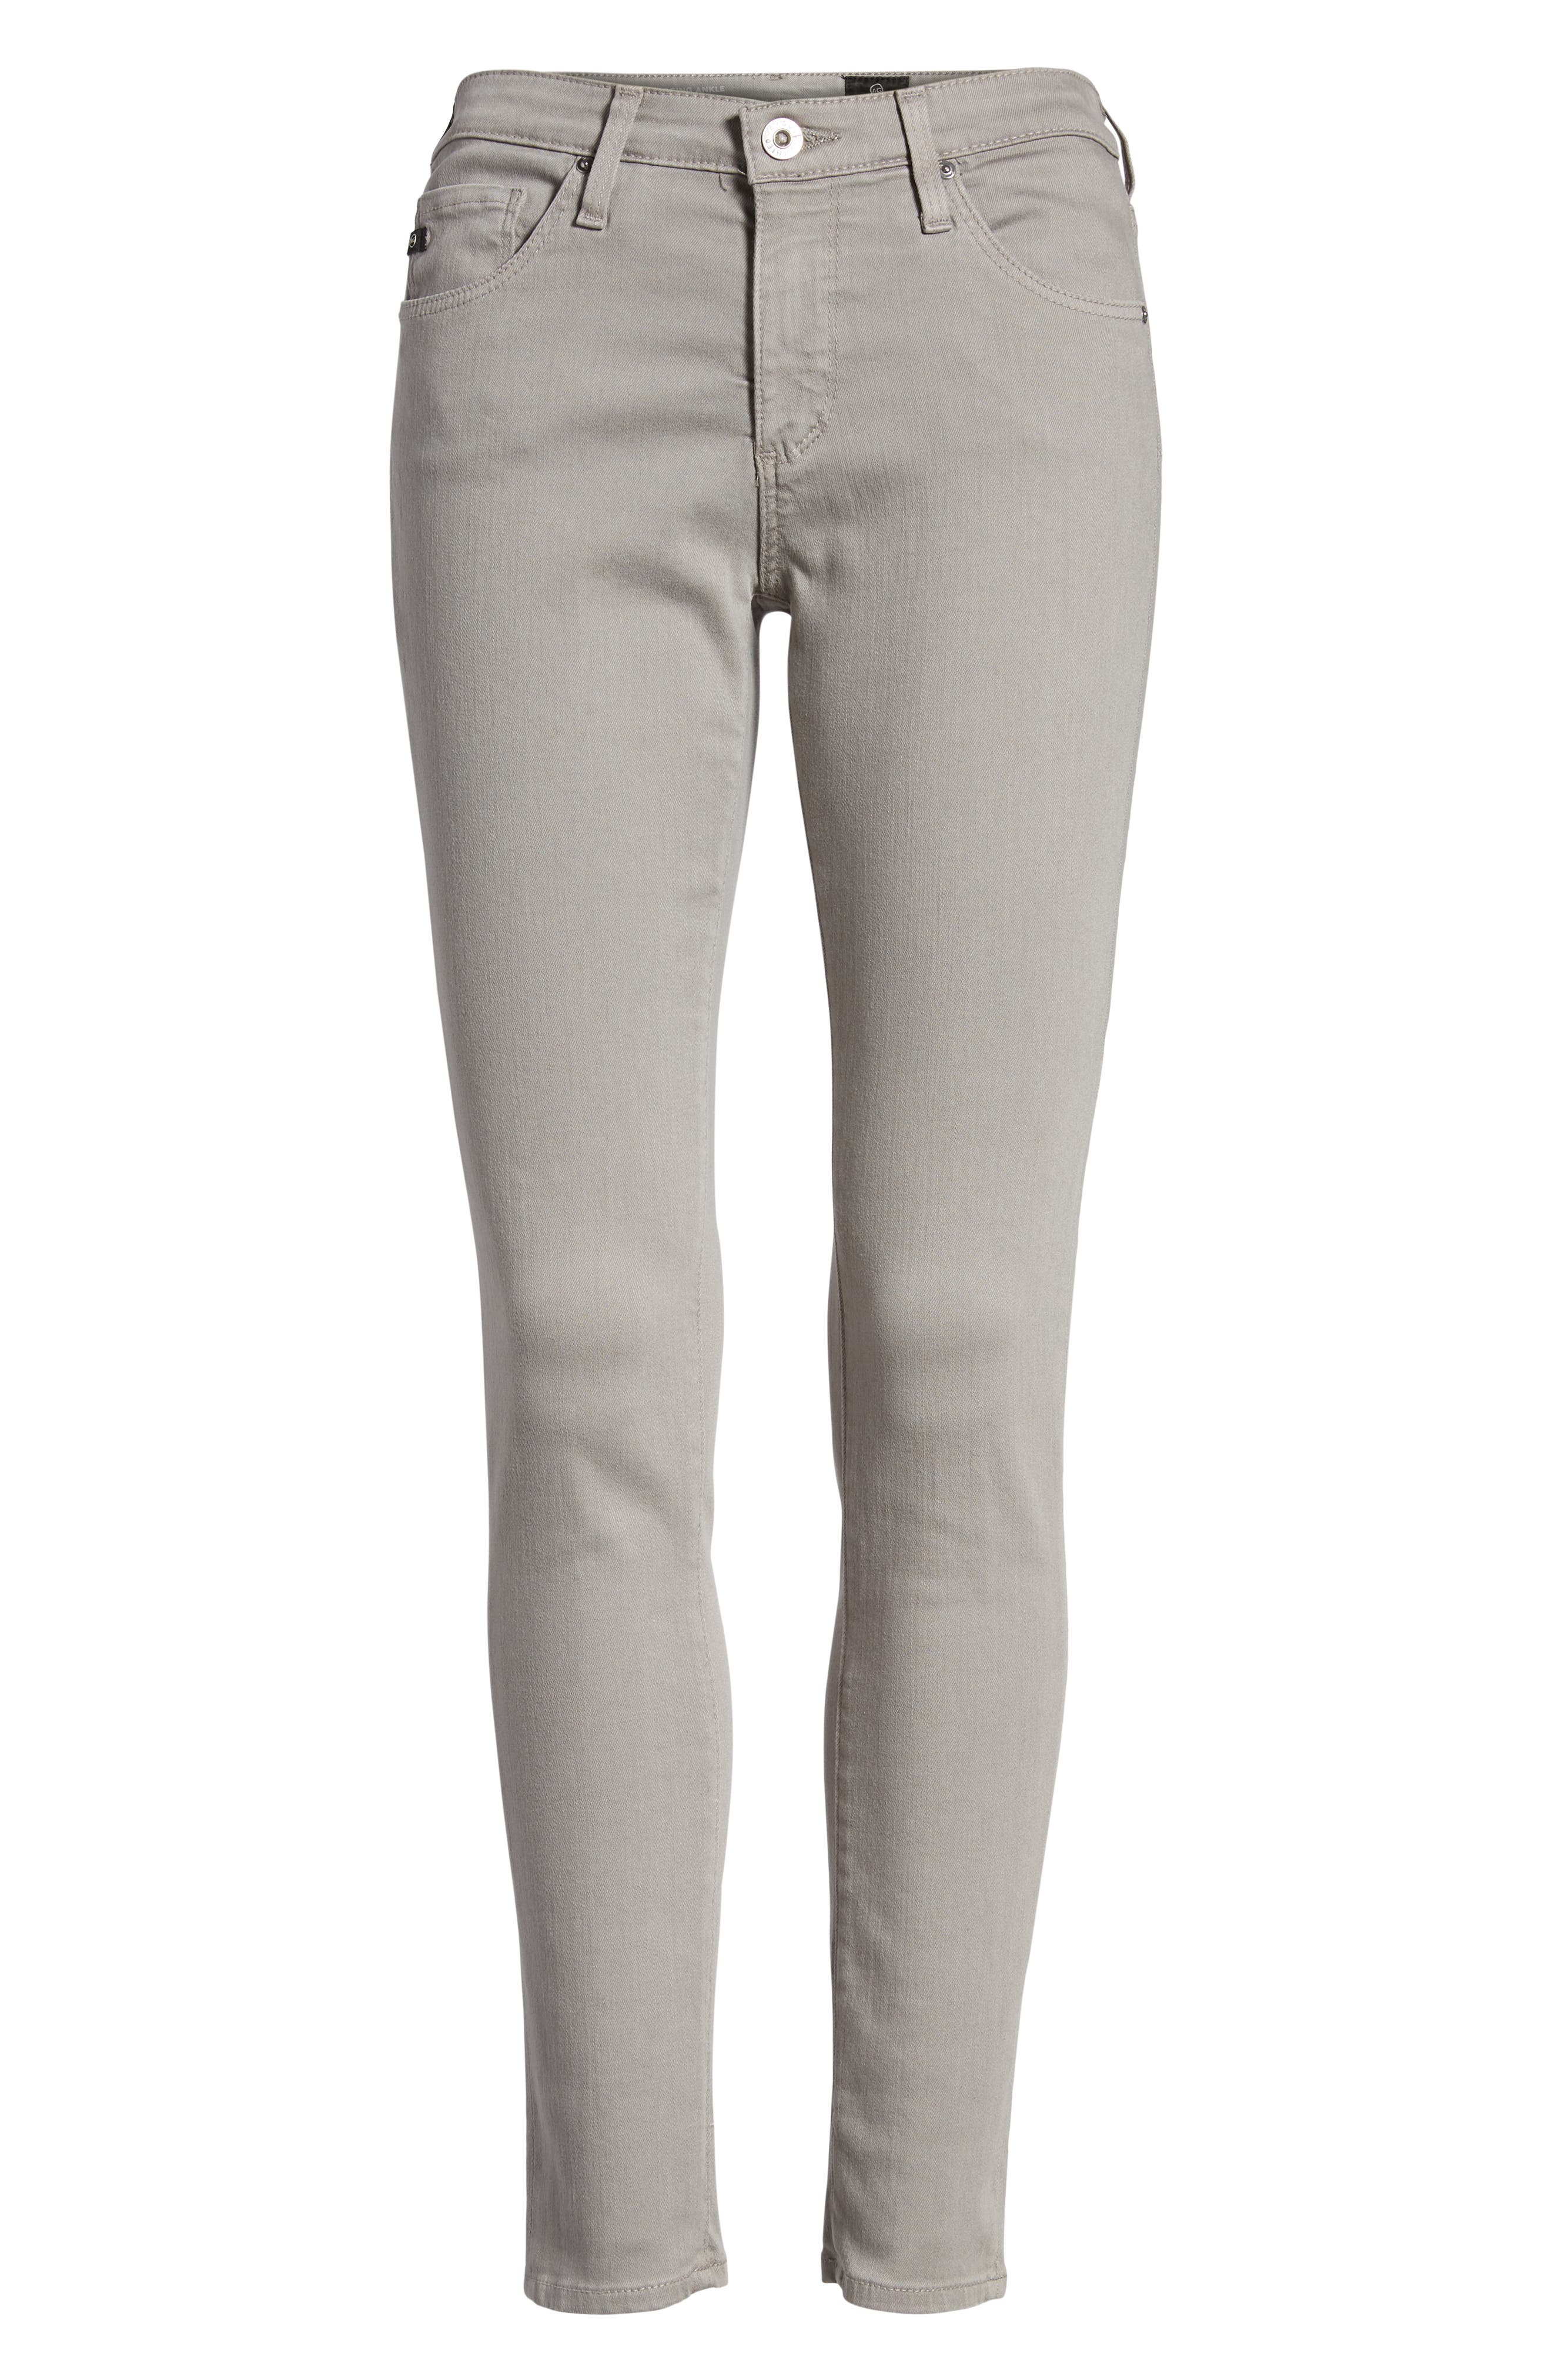 'The Legging' Ankle Jeans,                             Alternate thumbnail 7, color,                             023